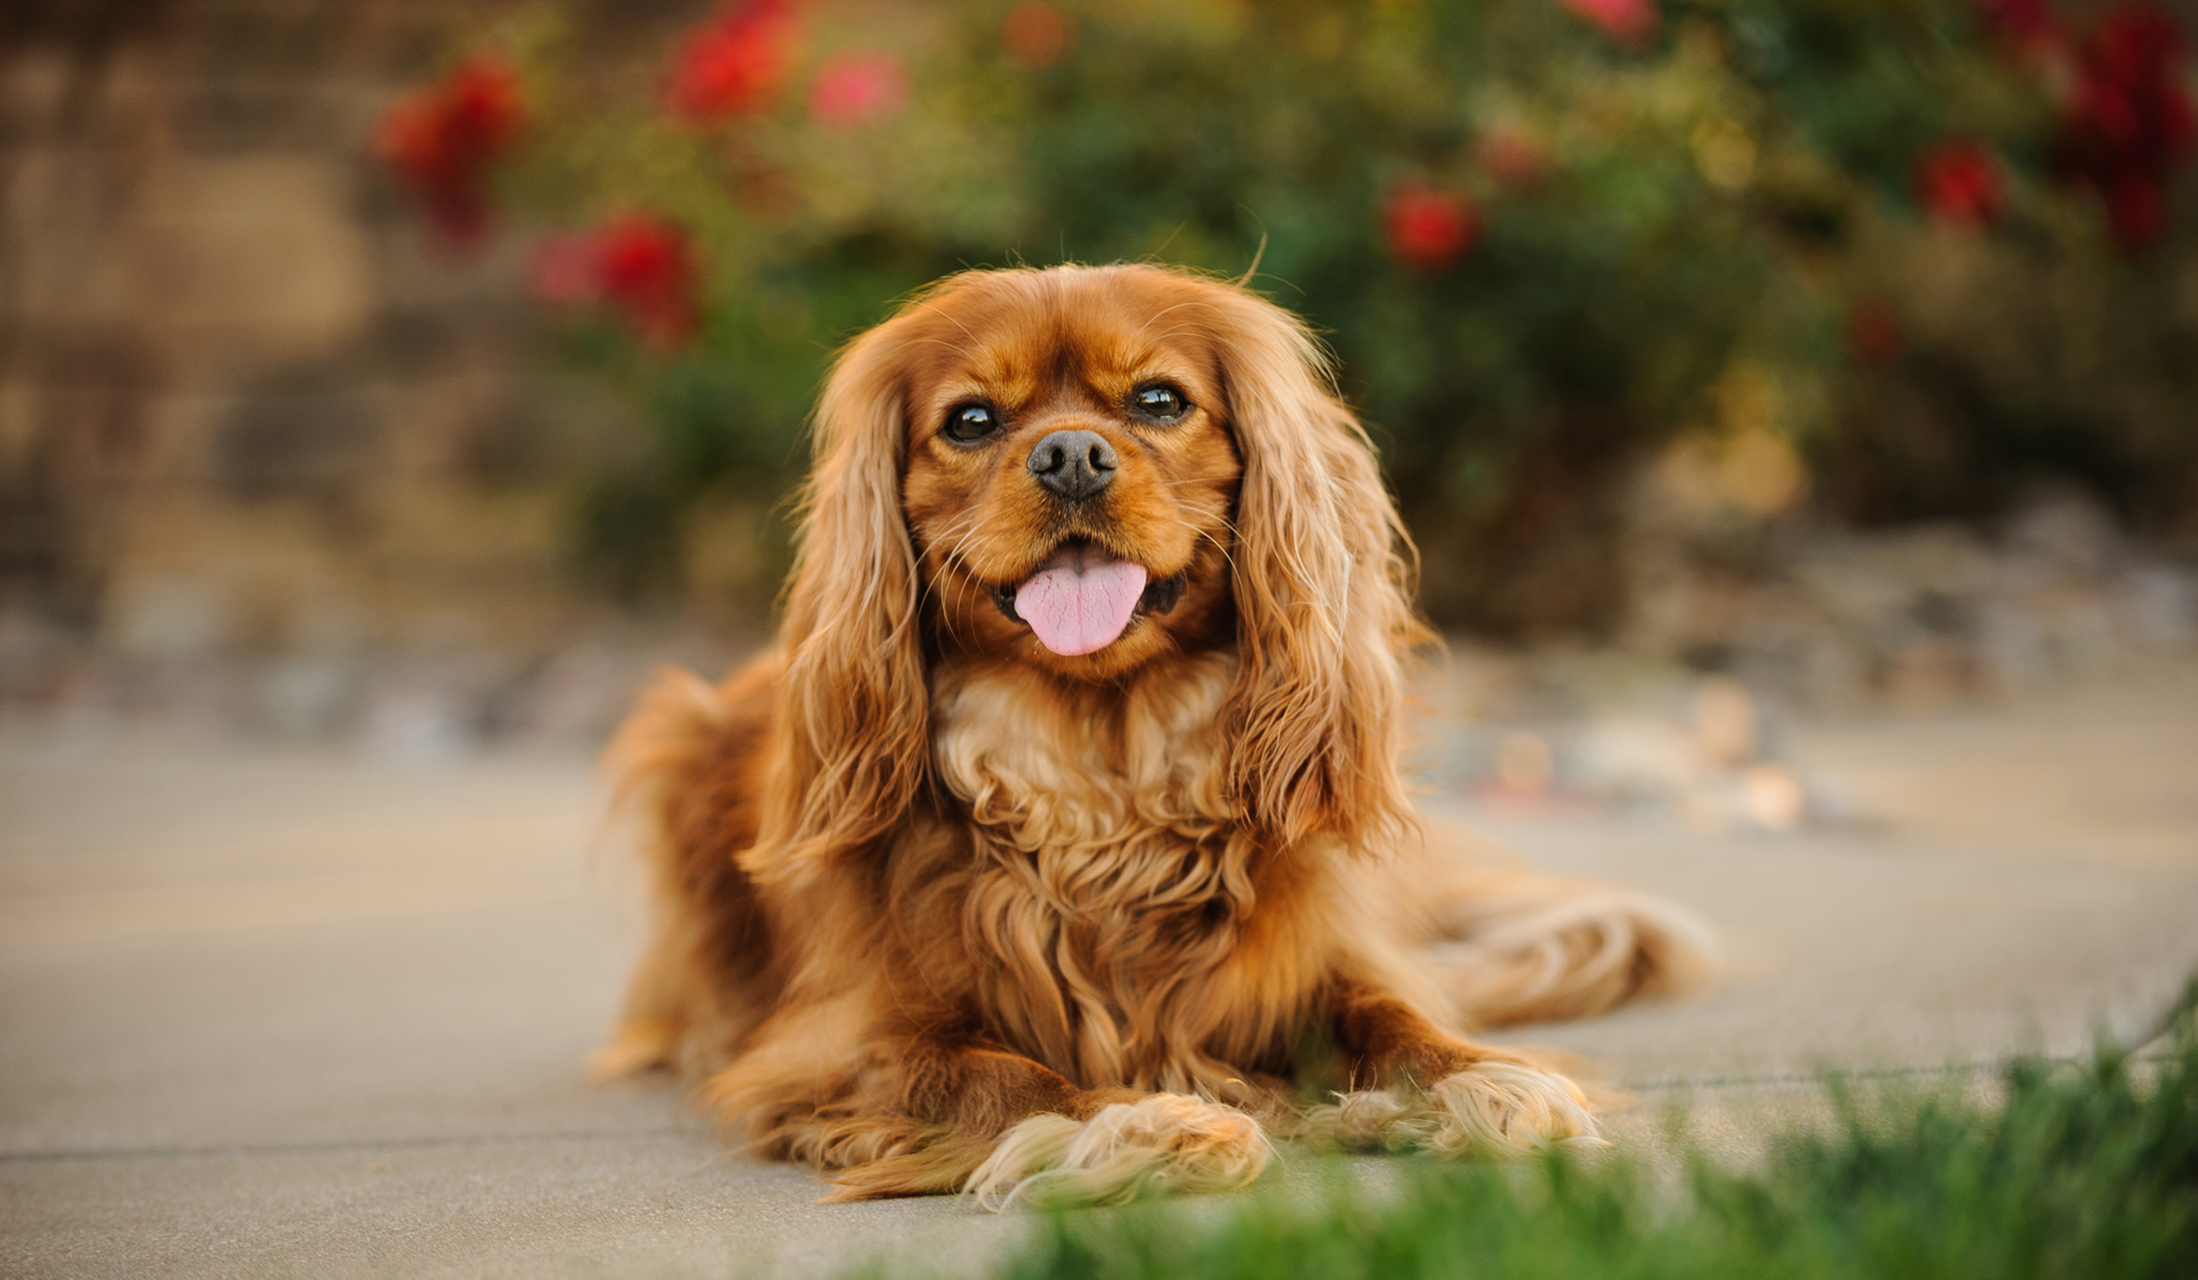 cavalier king charles spaniel dog resting on sidewalk